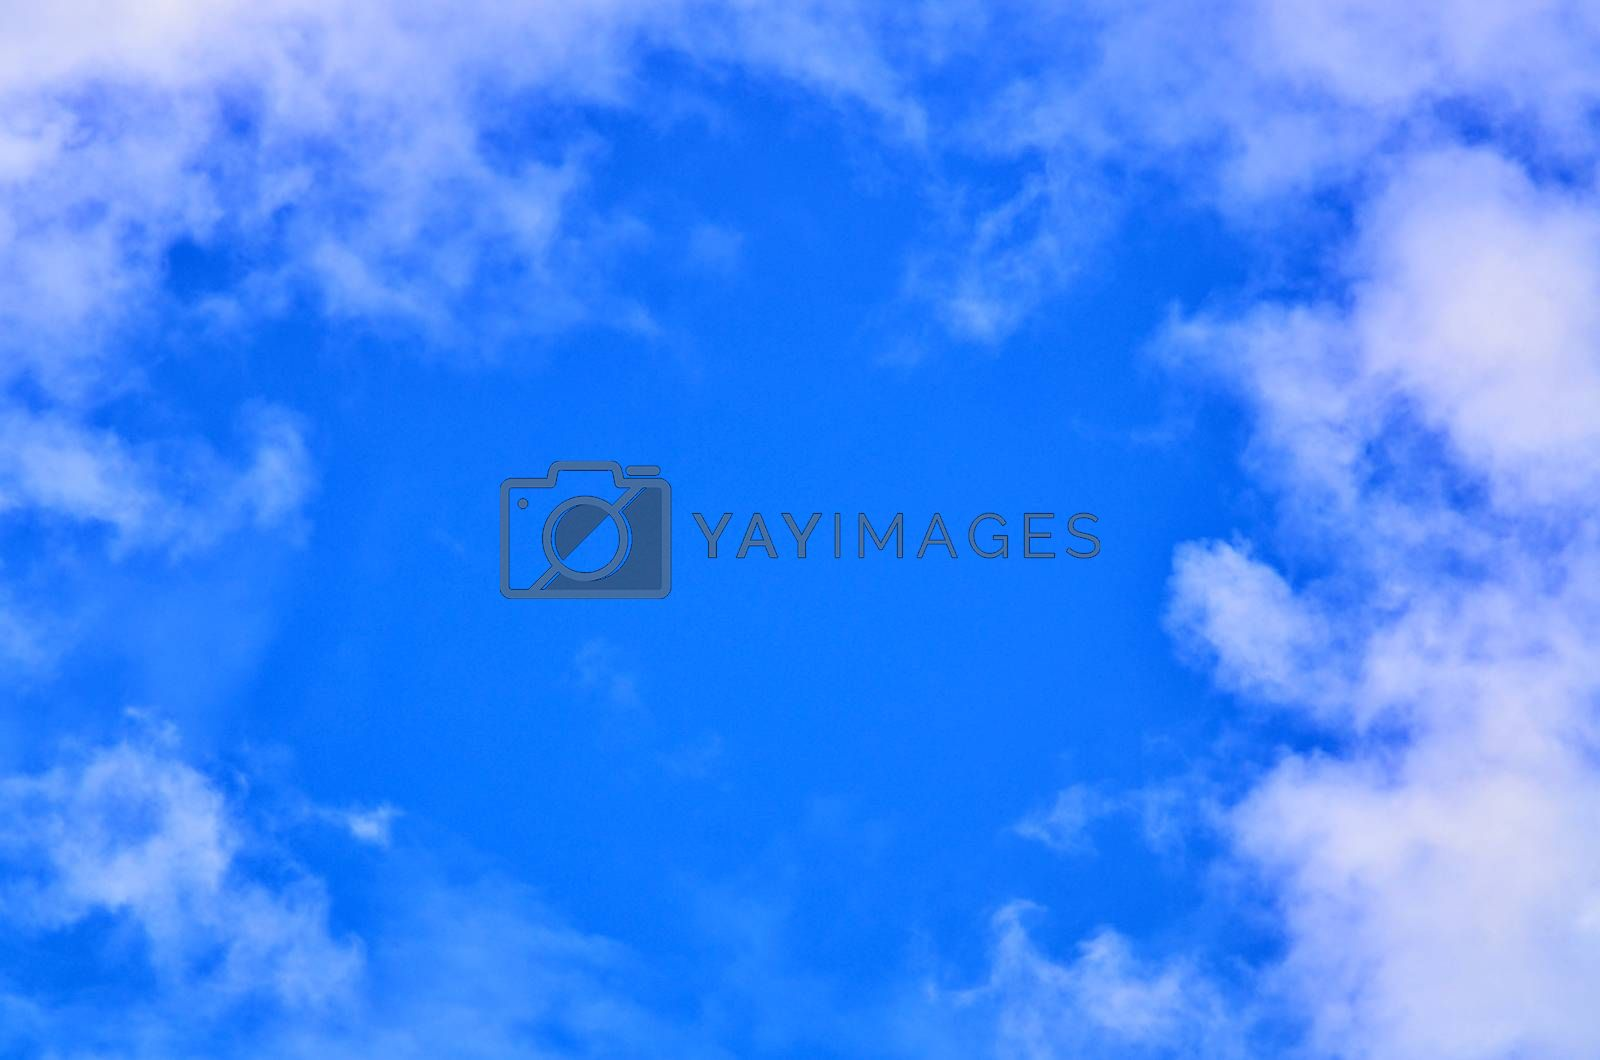 Royalty free image of clouds in the blue sky by raweenuttapong